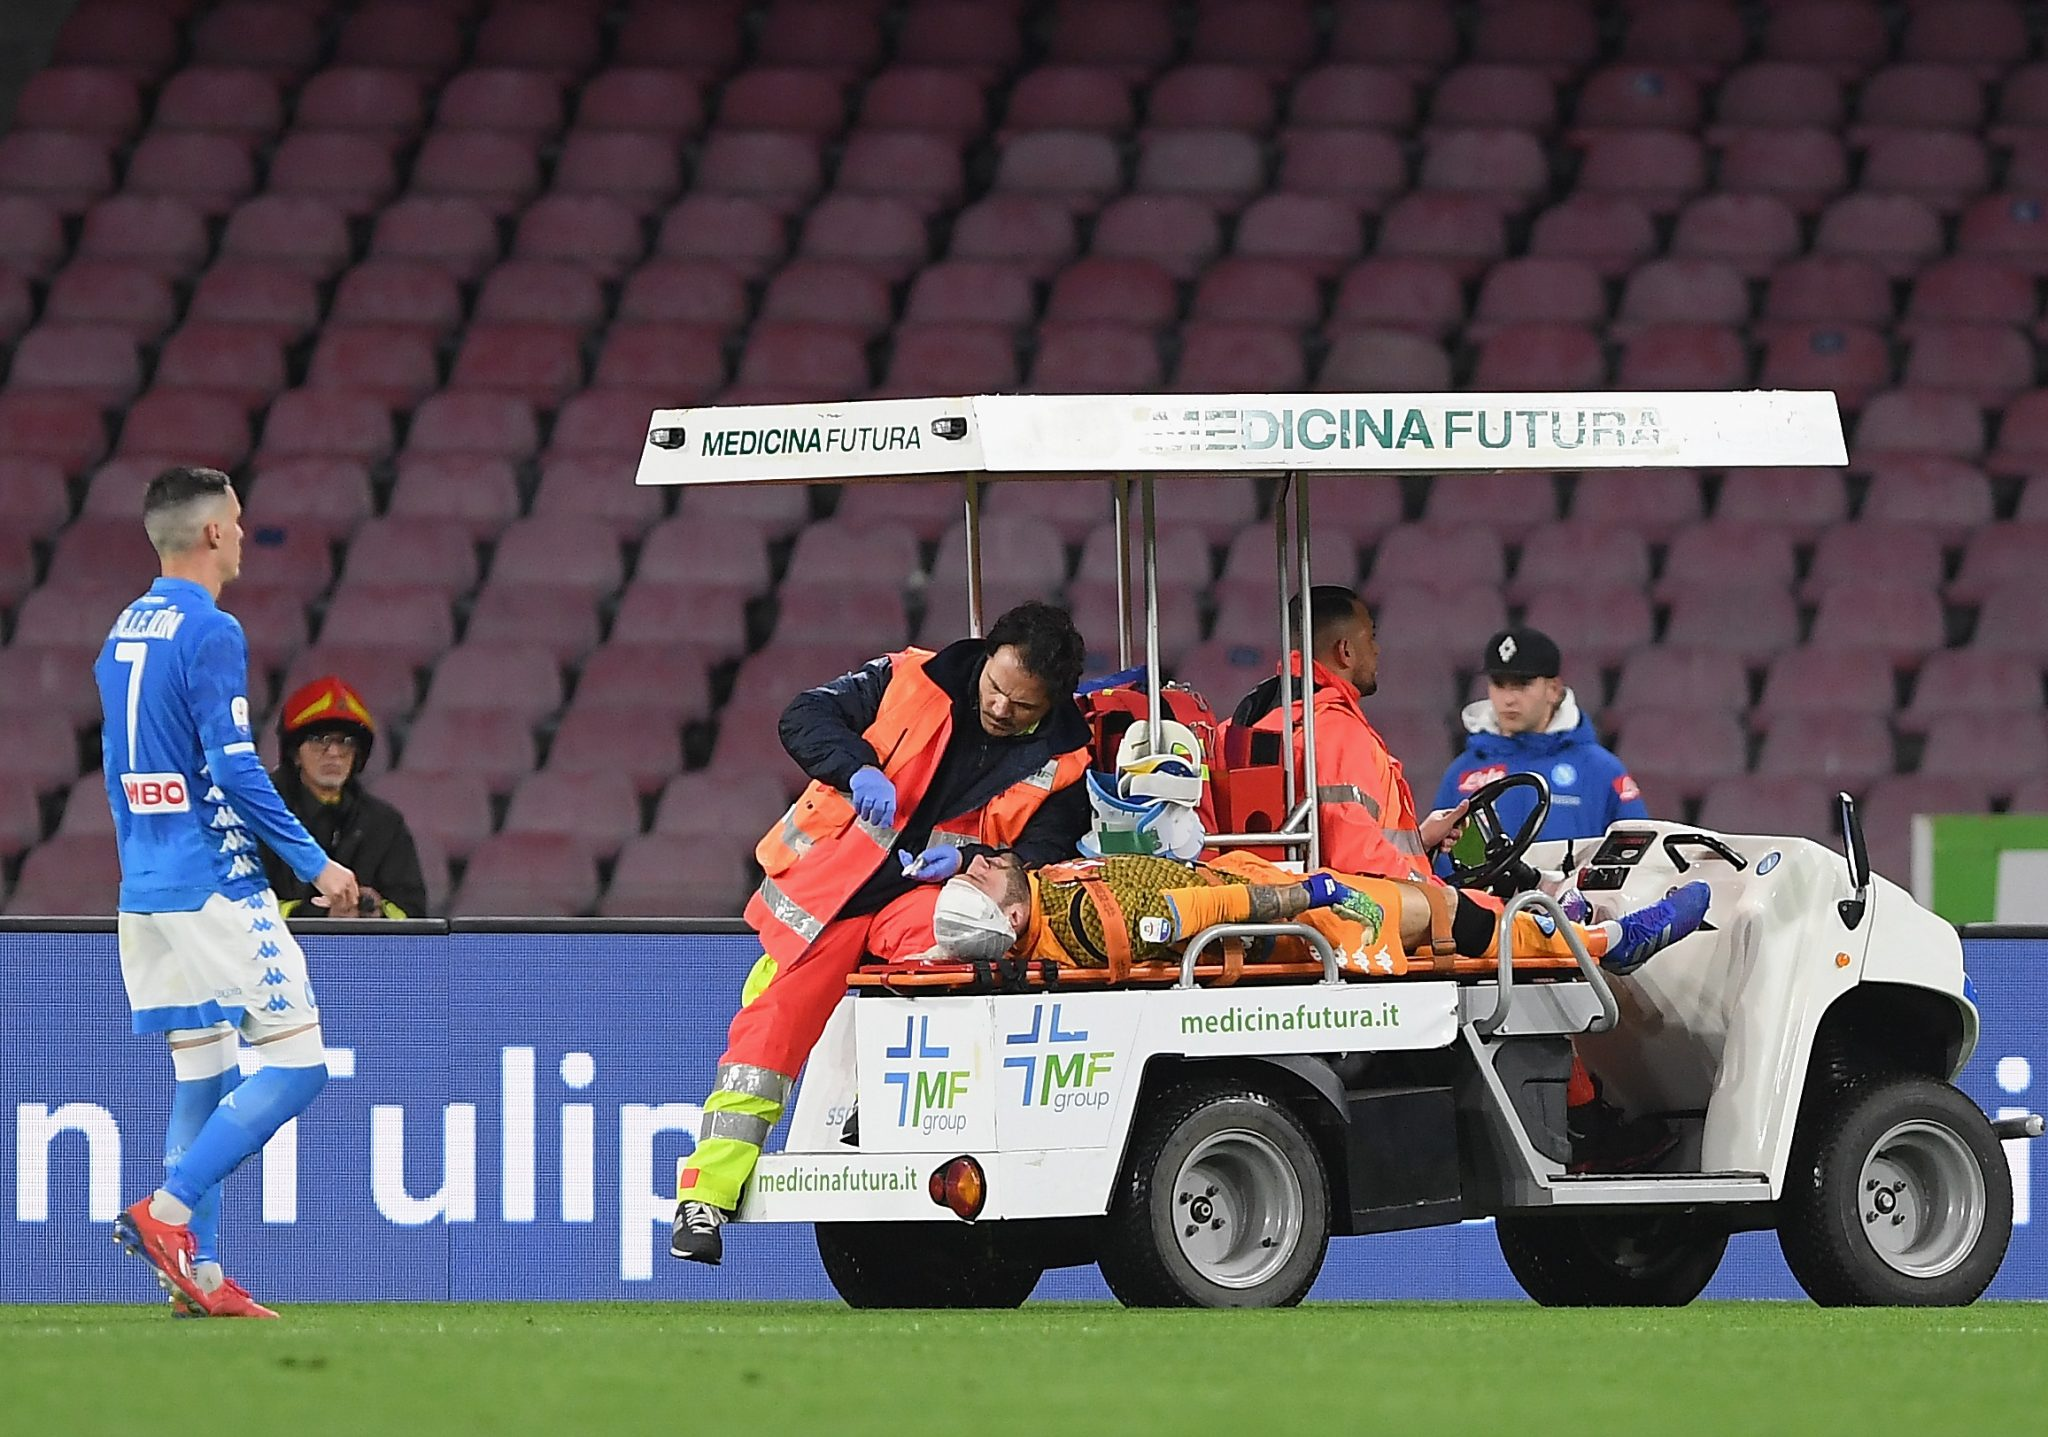 Carlo Ancelotti Provides Update on David Ospina Head Injury After Concerning Collapse